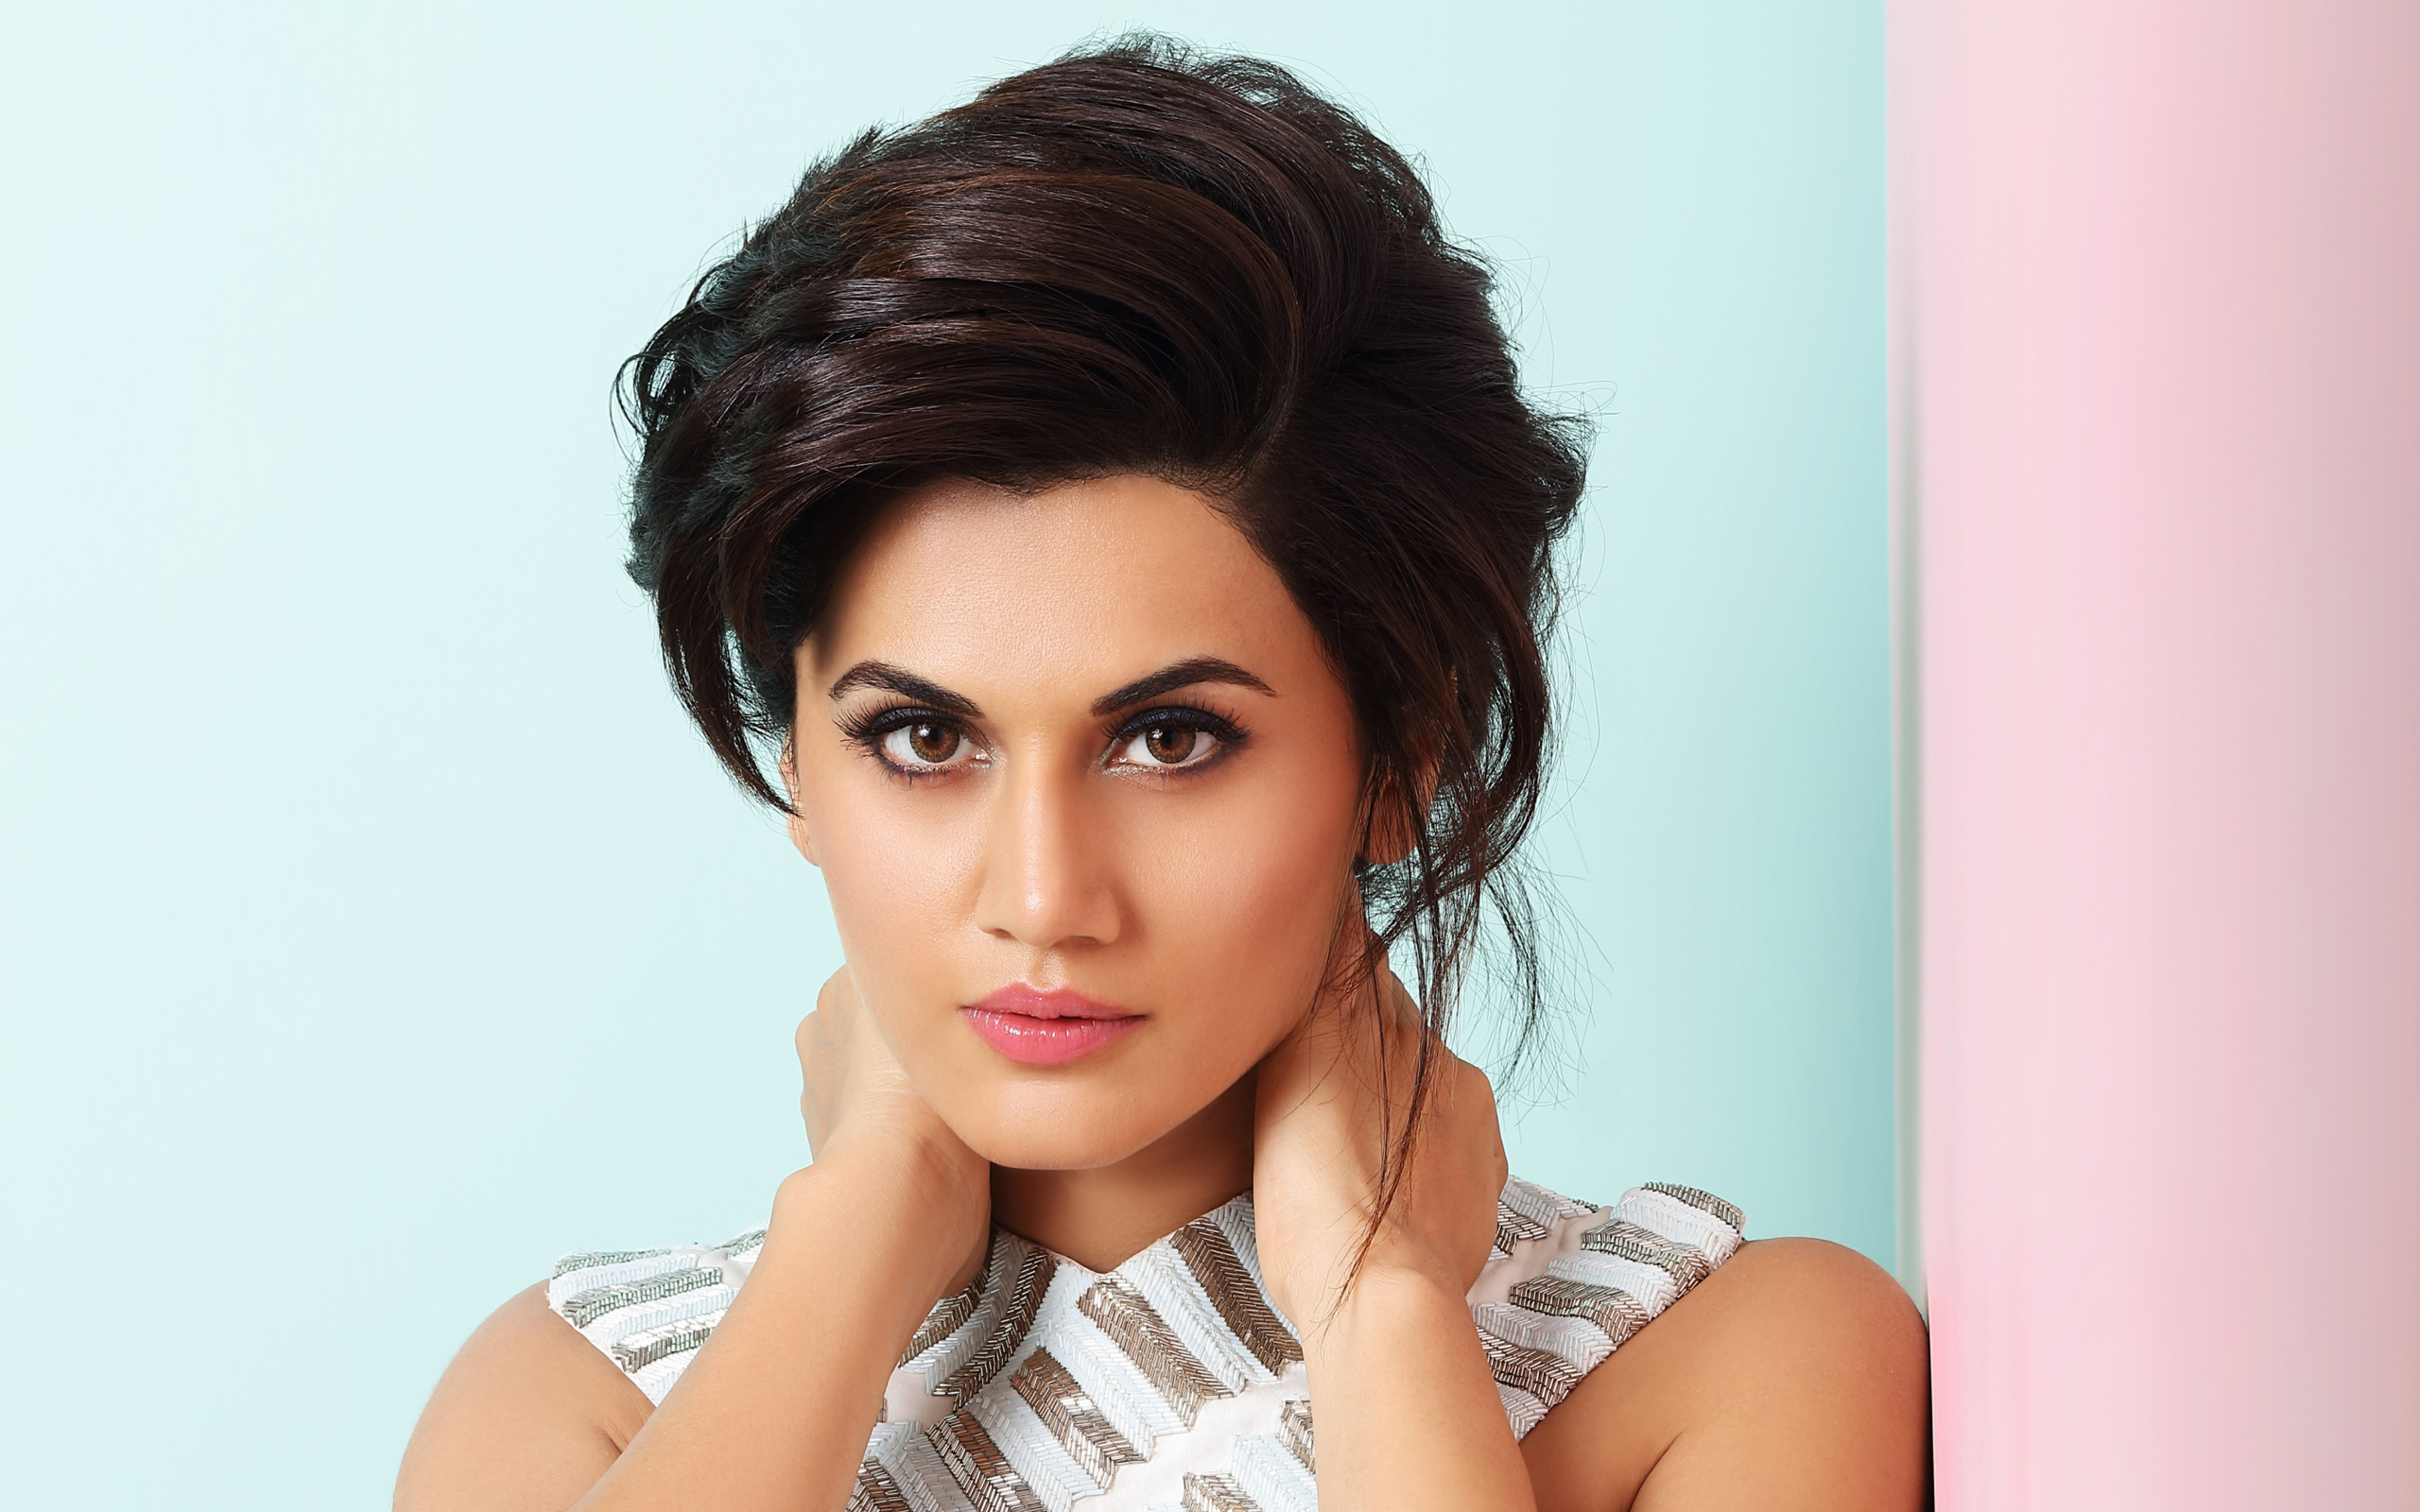 2560x1600 - Tapsee pannu Wallpapers 11